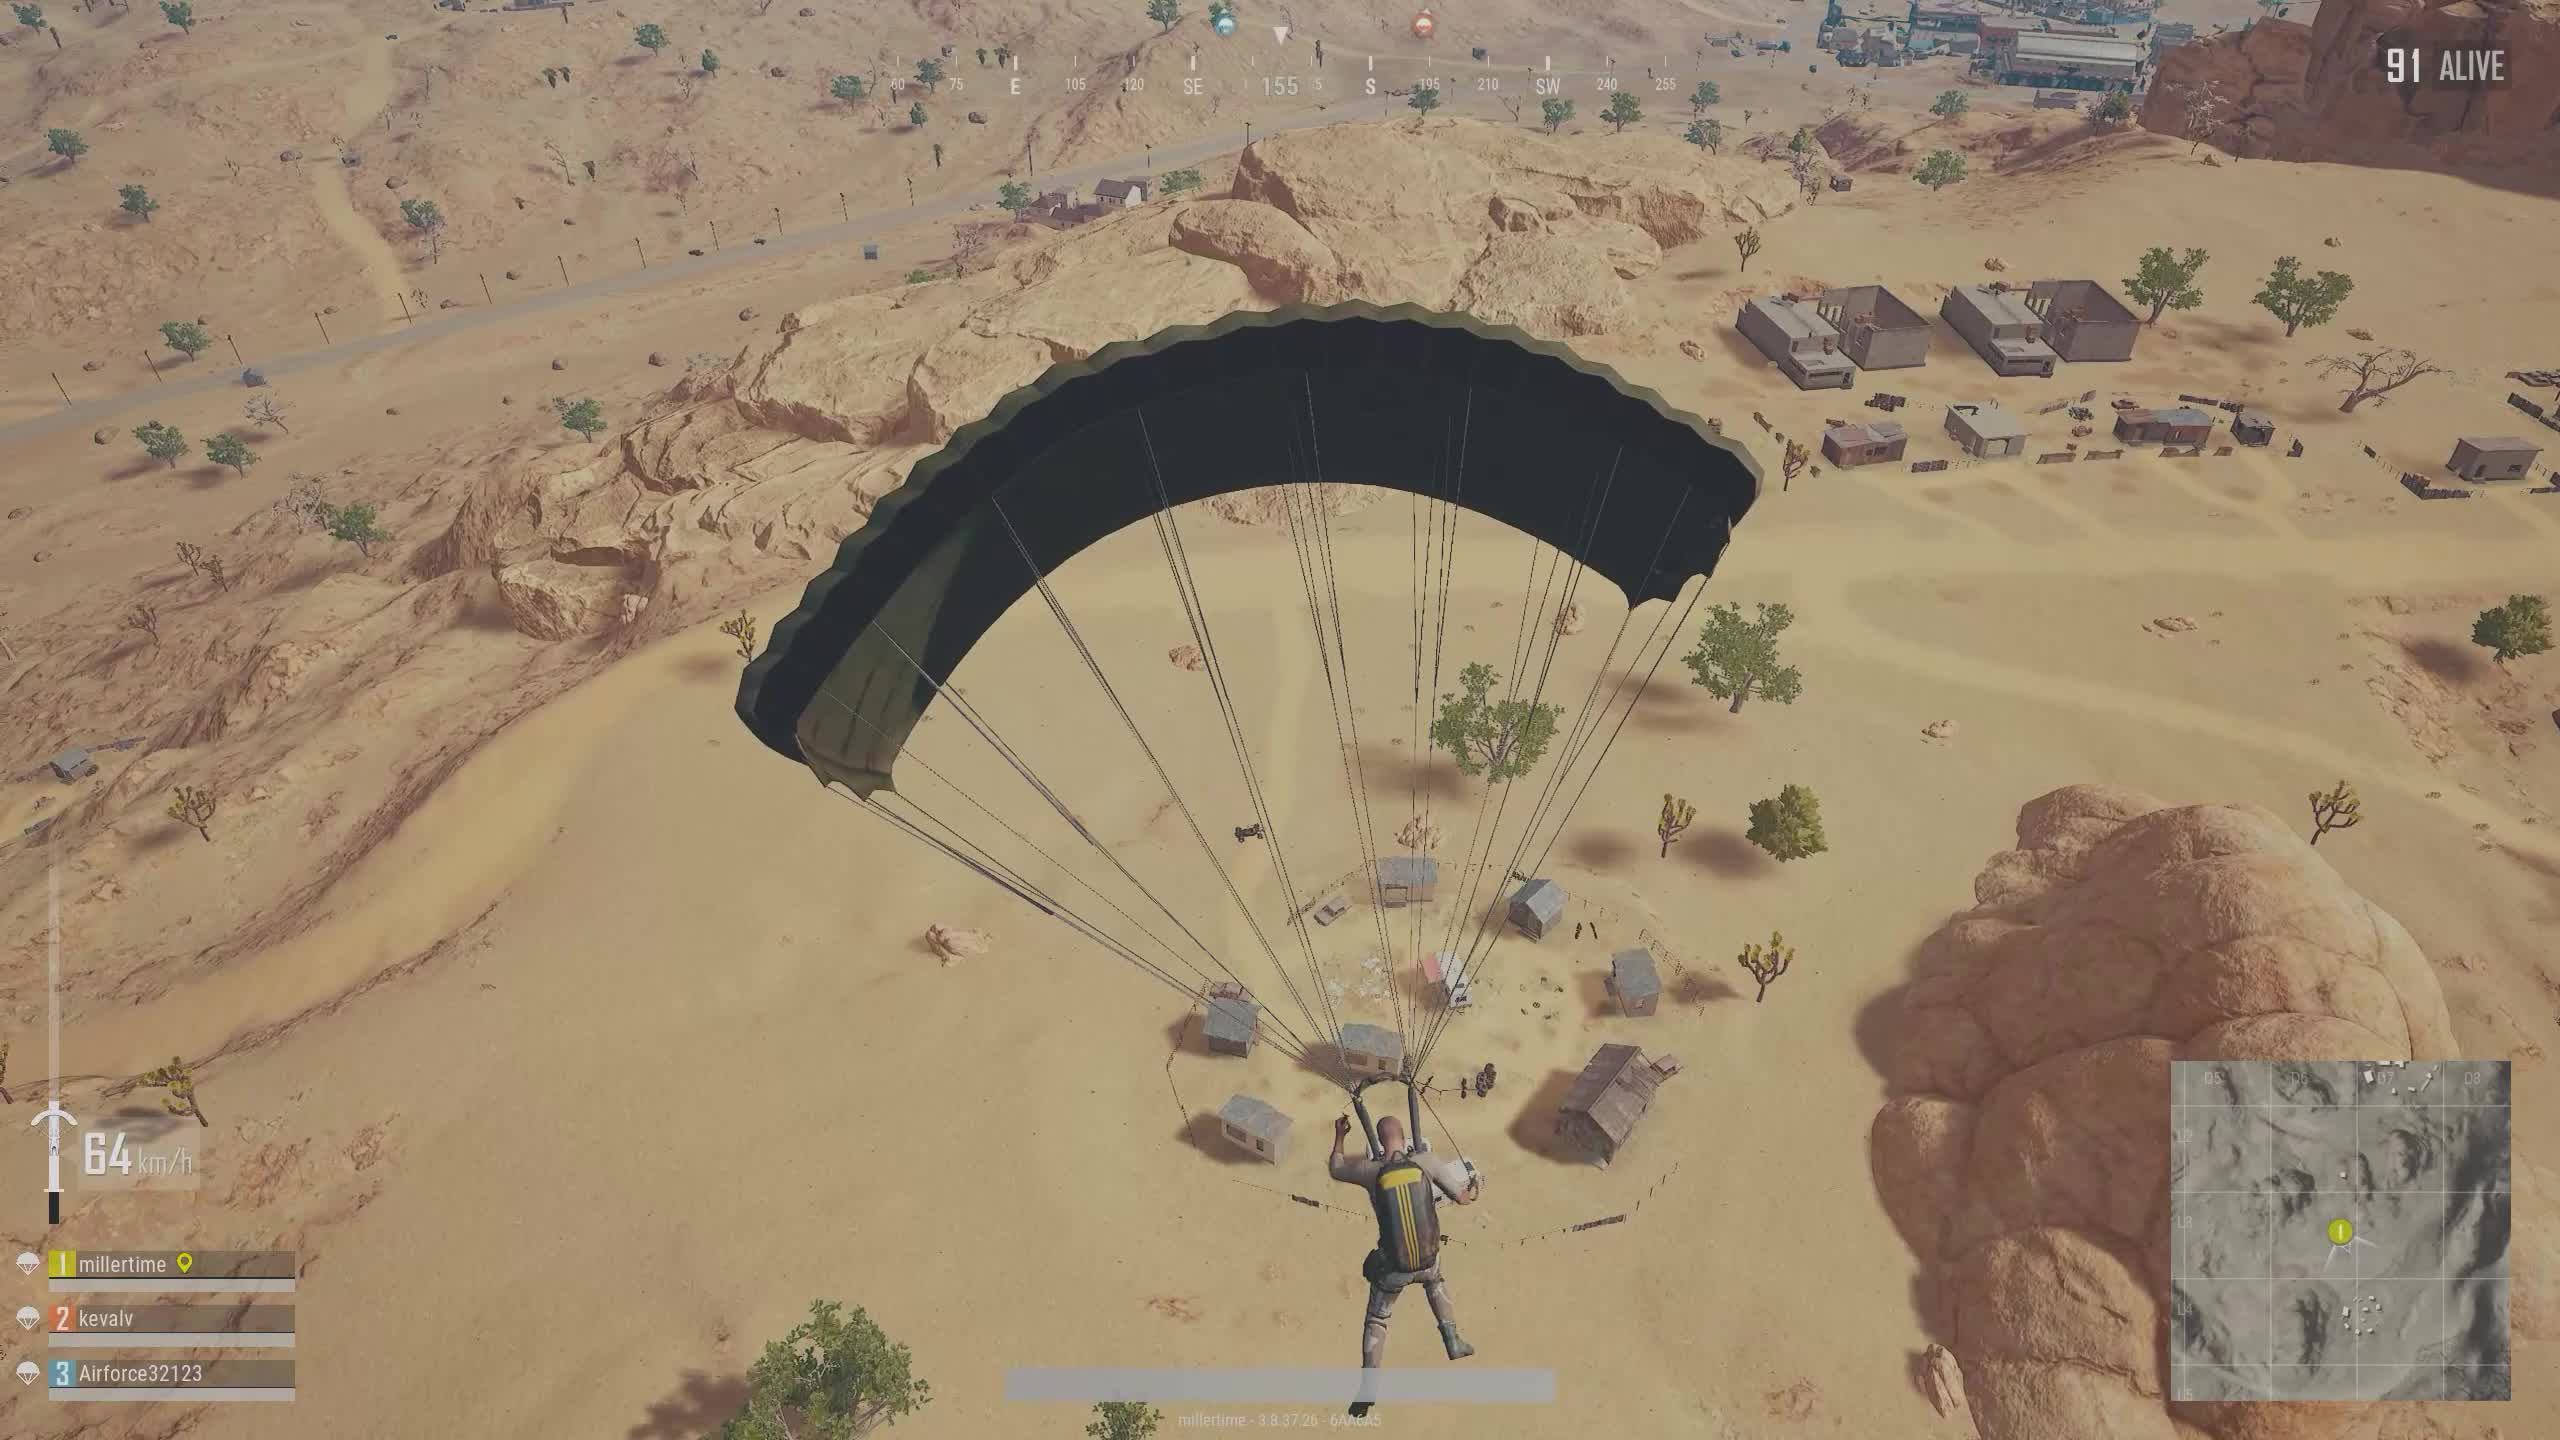 PUBG, glitch, kite, parachute glitch, Fight for your kite to party GIFs